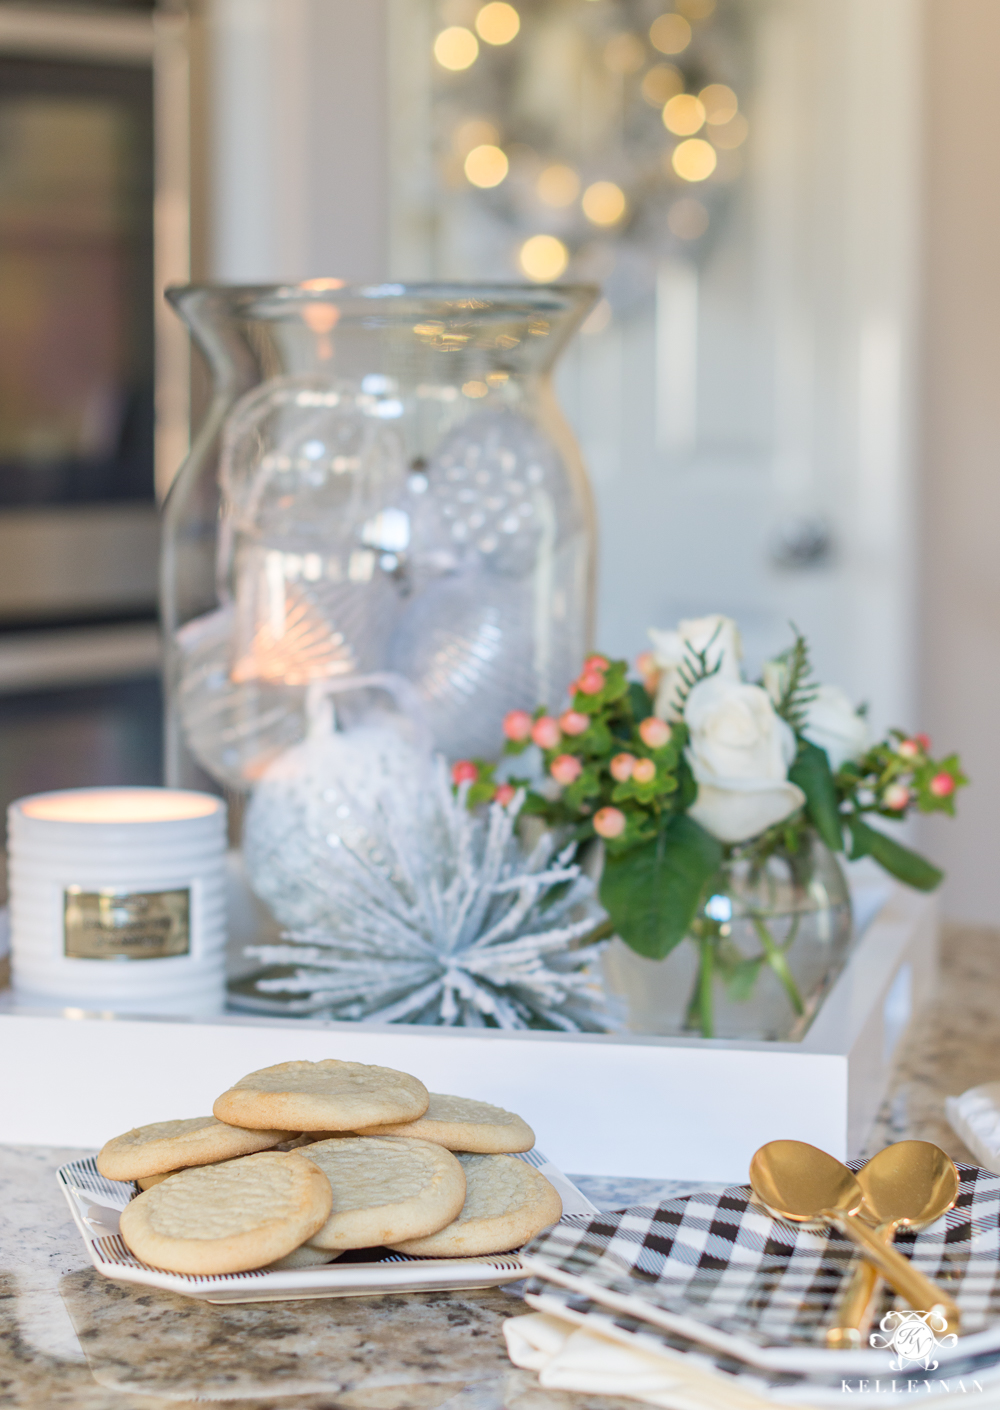 Kitchen island Christmas decor with a jar of ornaments